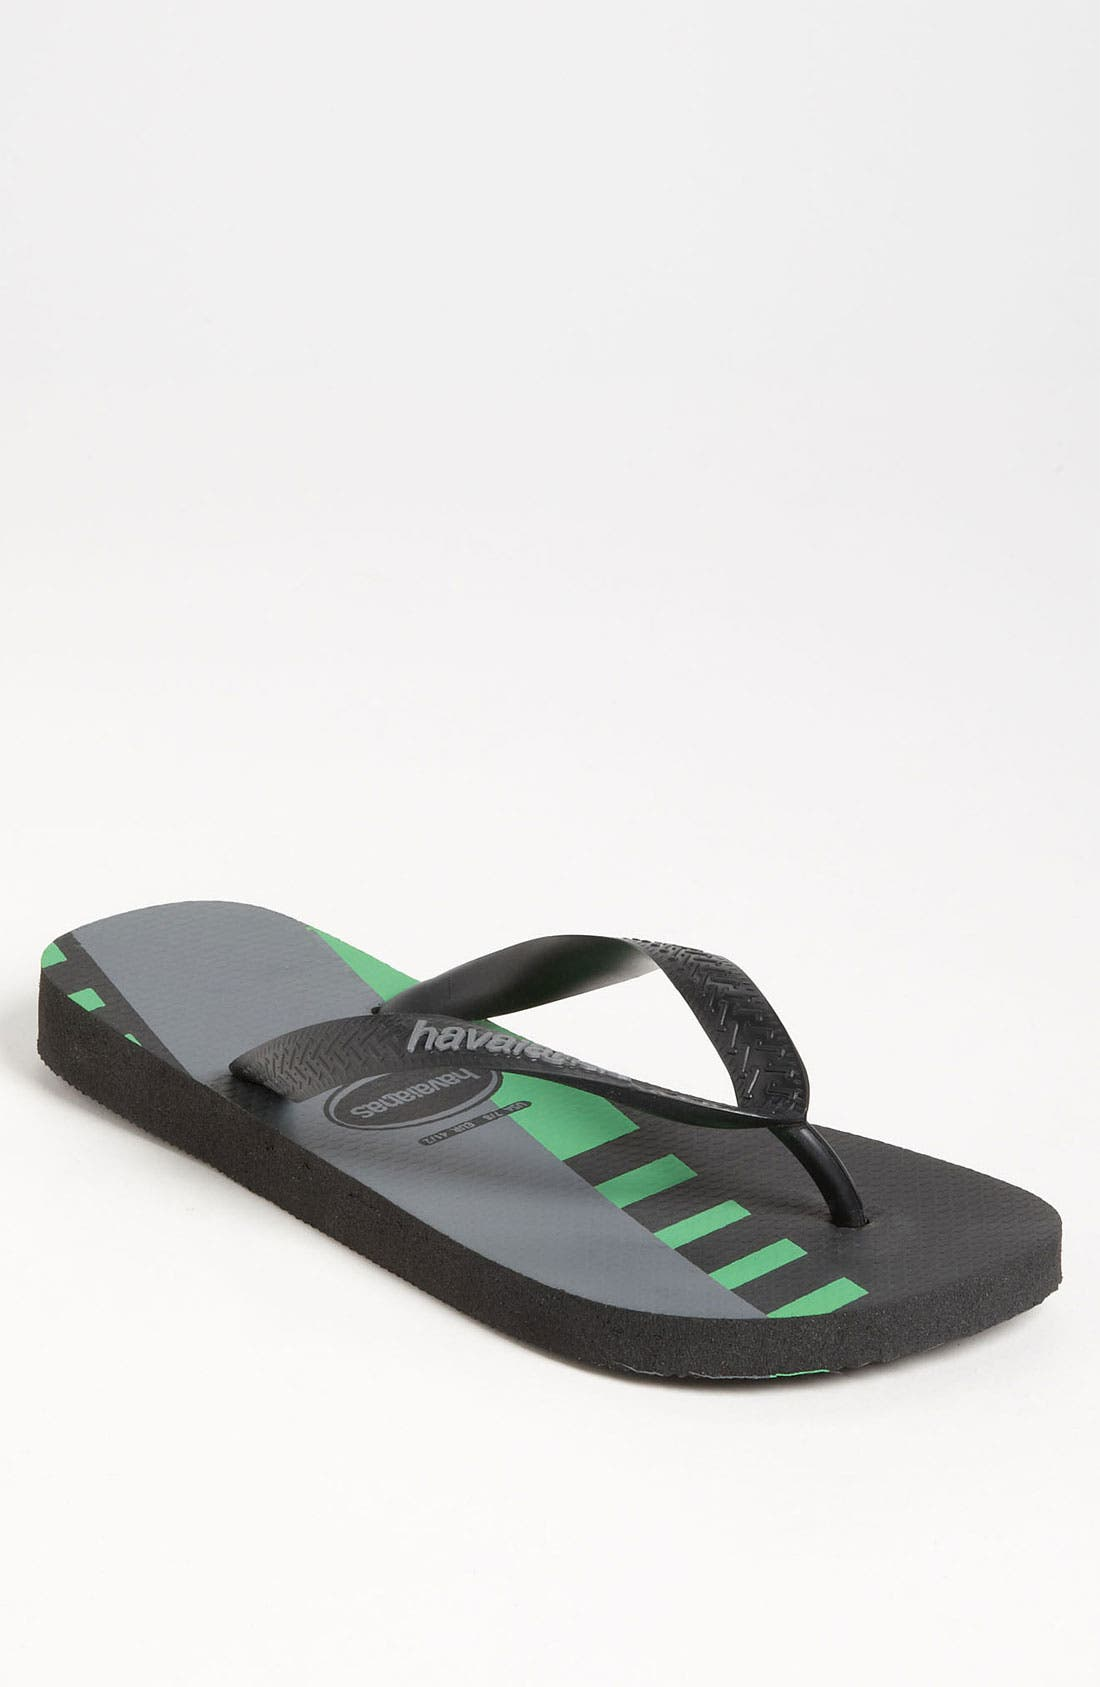 TREND Mens Flip Flop,                             Main thumbnail 1, color,                             Black/ Green